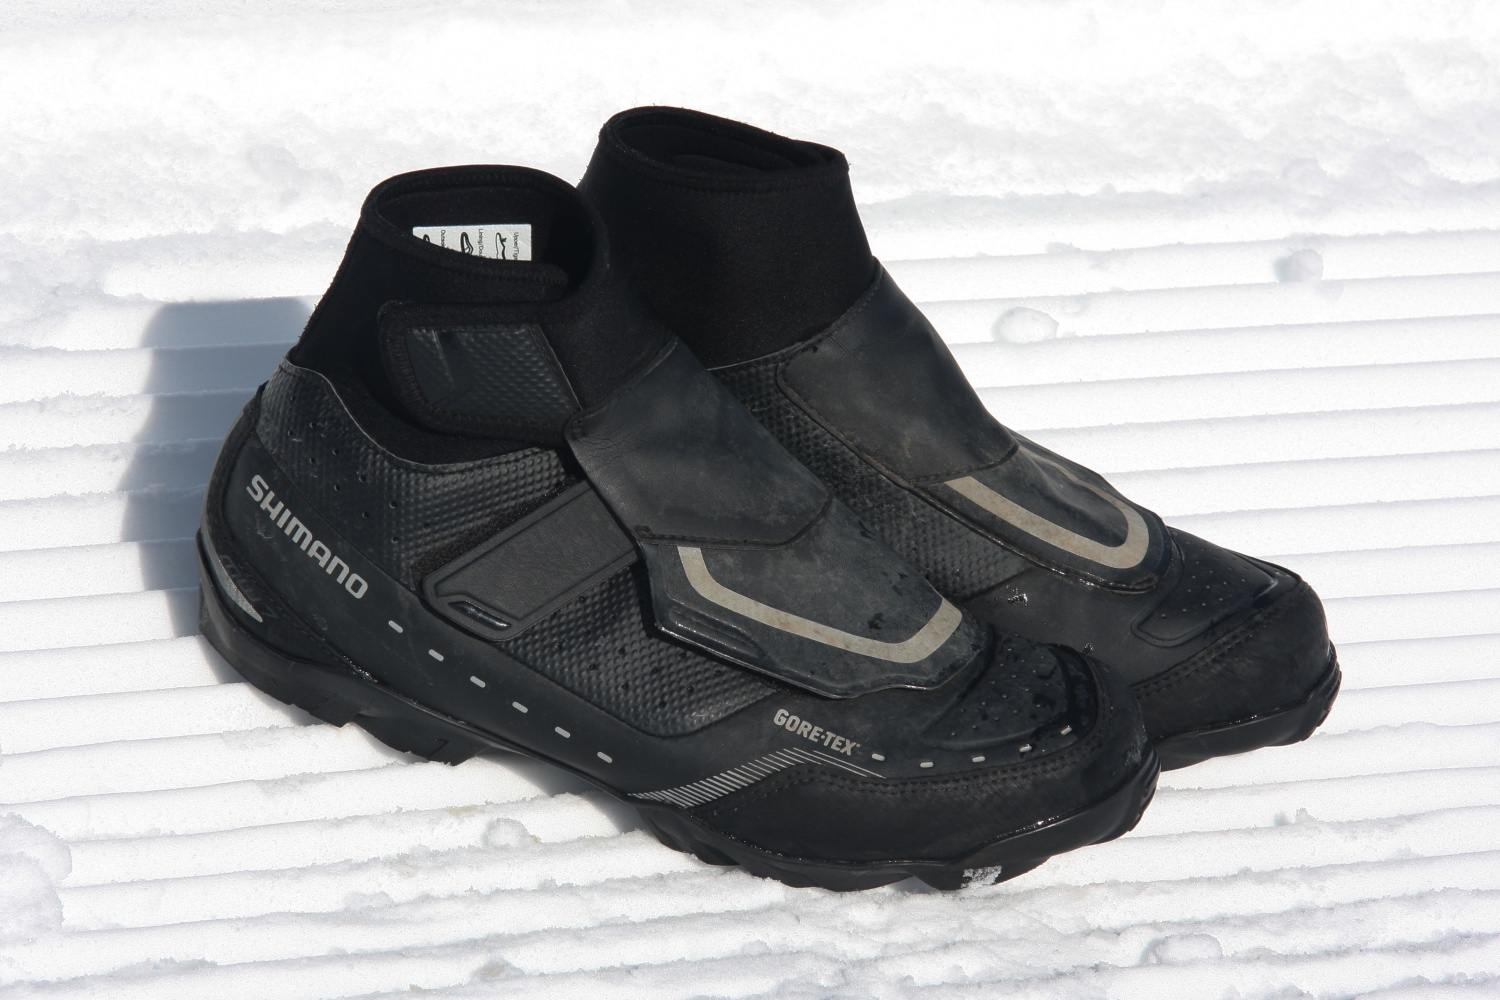 This previous generation pair of Shimano cold-weather mountain bike shoes have been a staple of our wintertime riding kit for several years. Photo by Jason Sumner